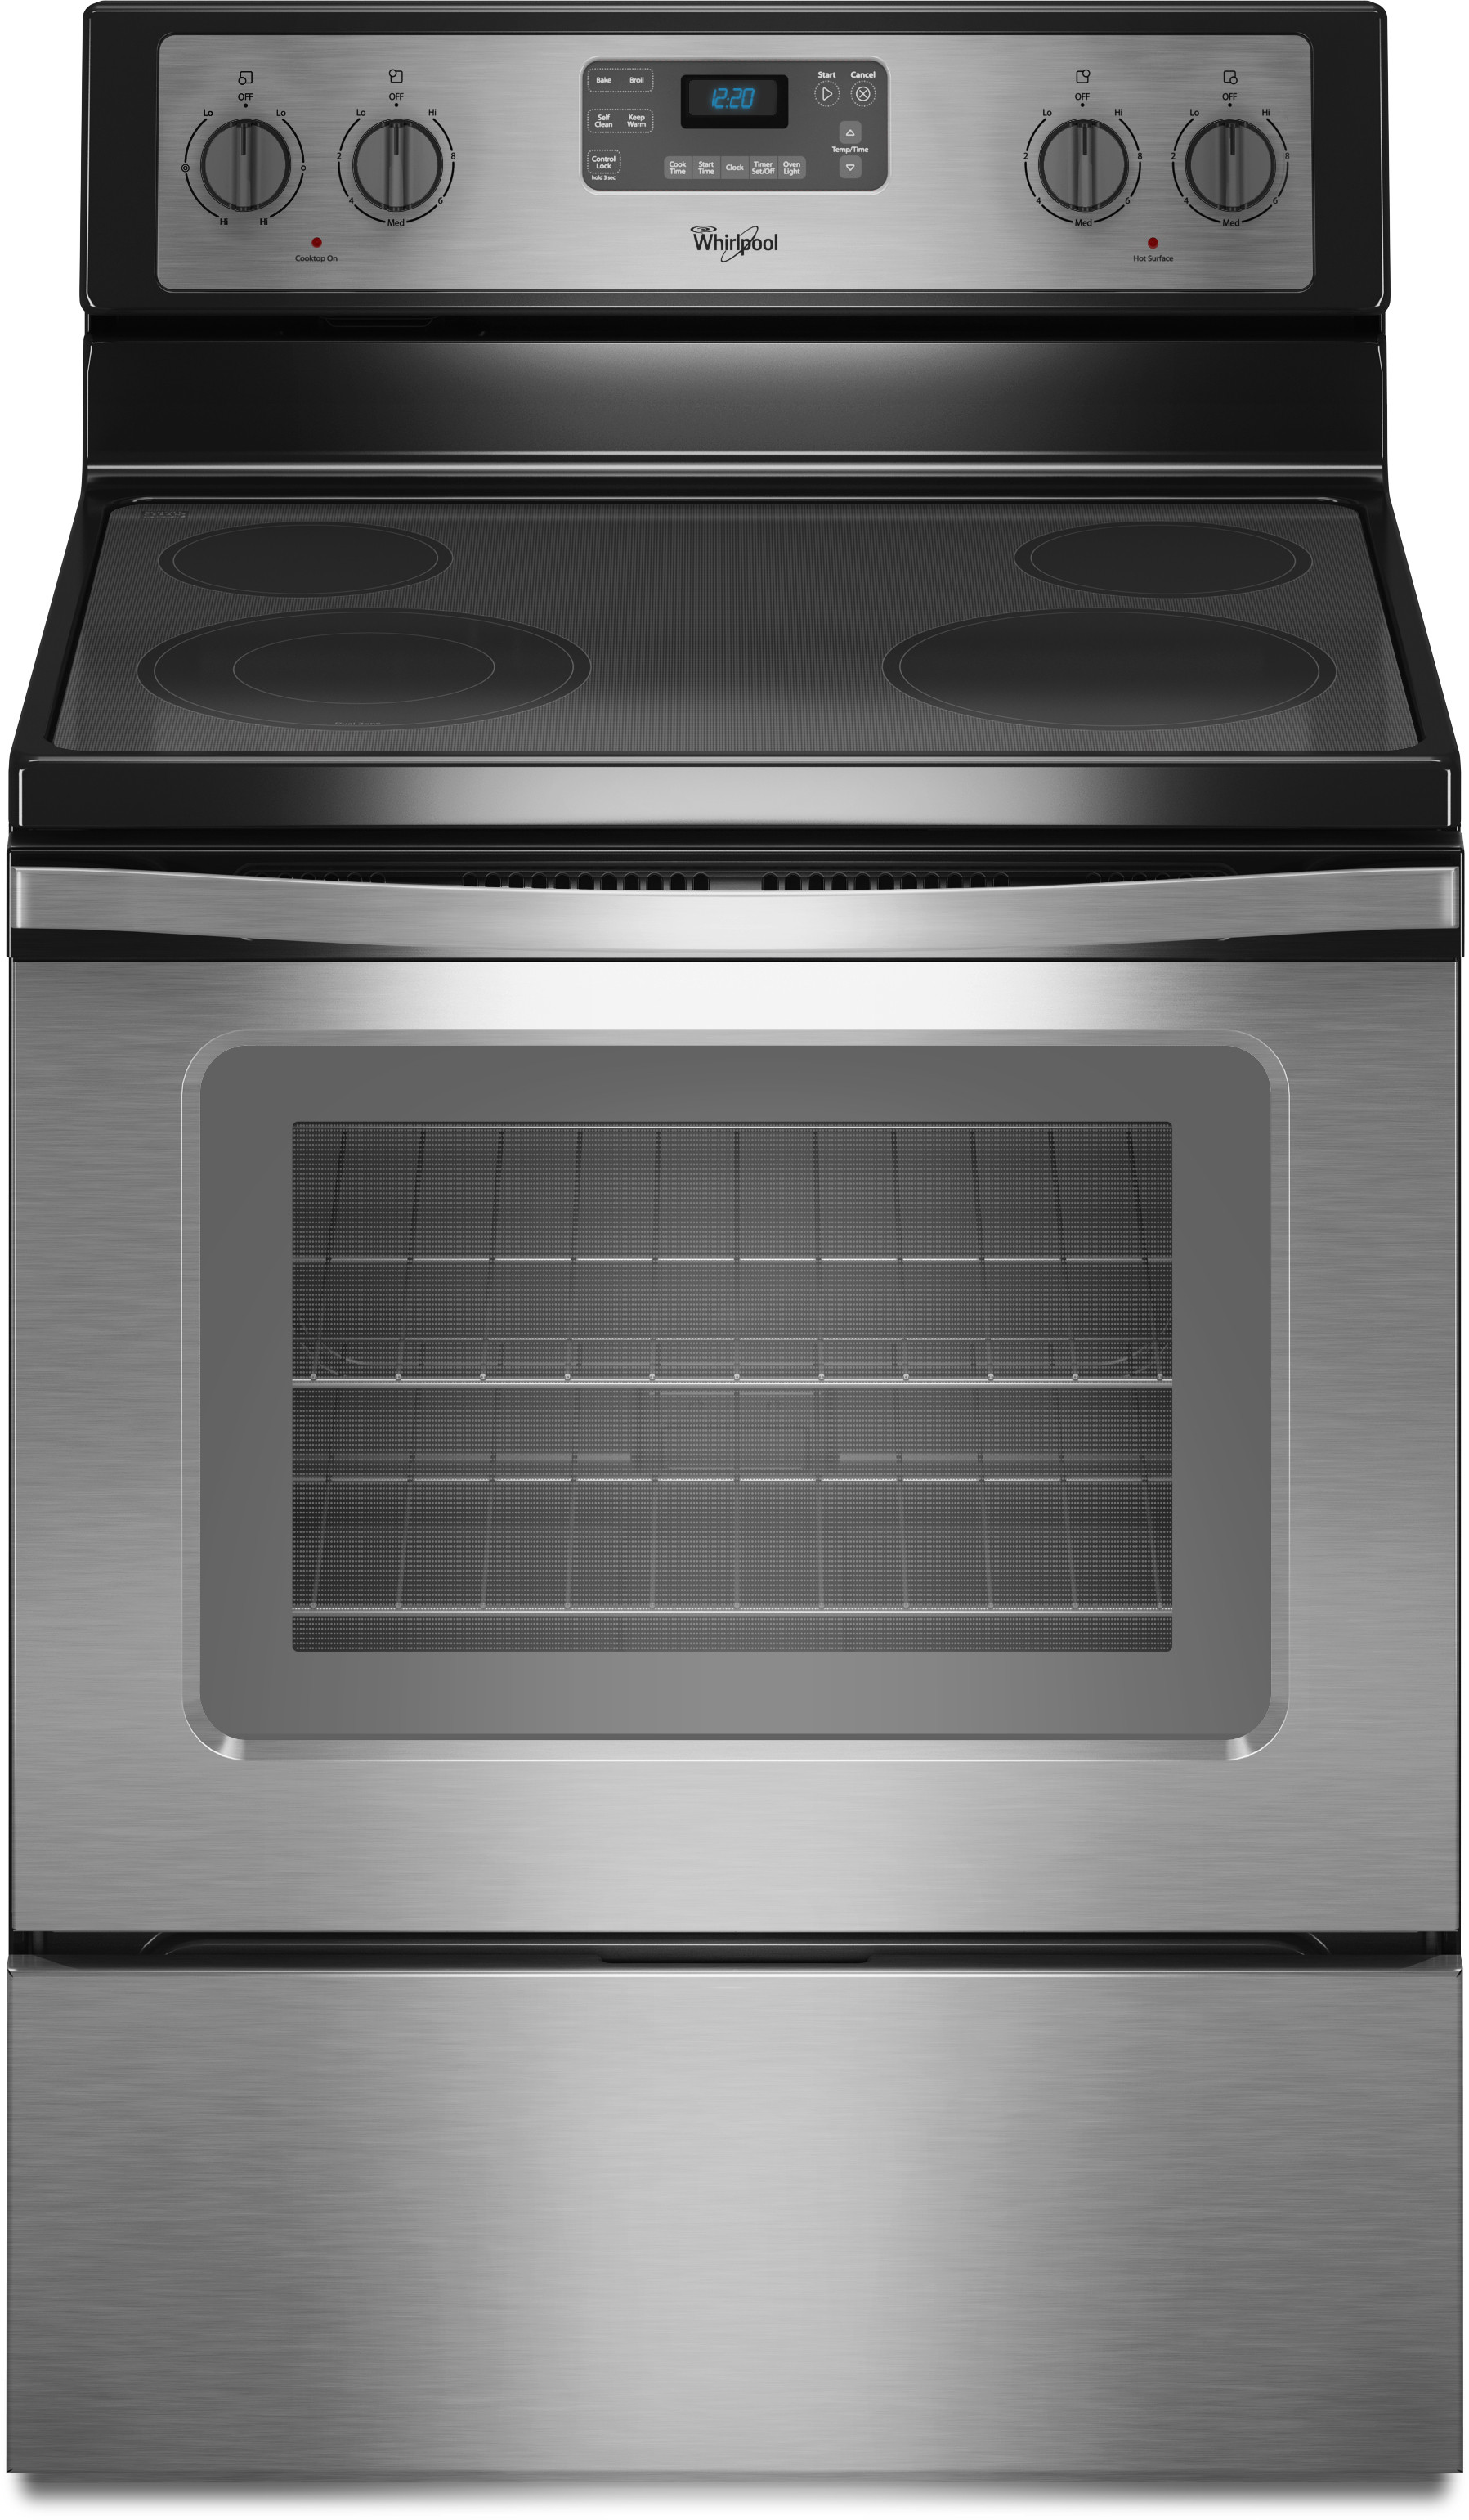 Whirlpool Wfe515s0es 30 Inch Freestanding Electric Range With Accubake Flexheat Steamclean Counter Depth 4 Smoothtop Elements 5 3 Cu Ft